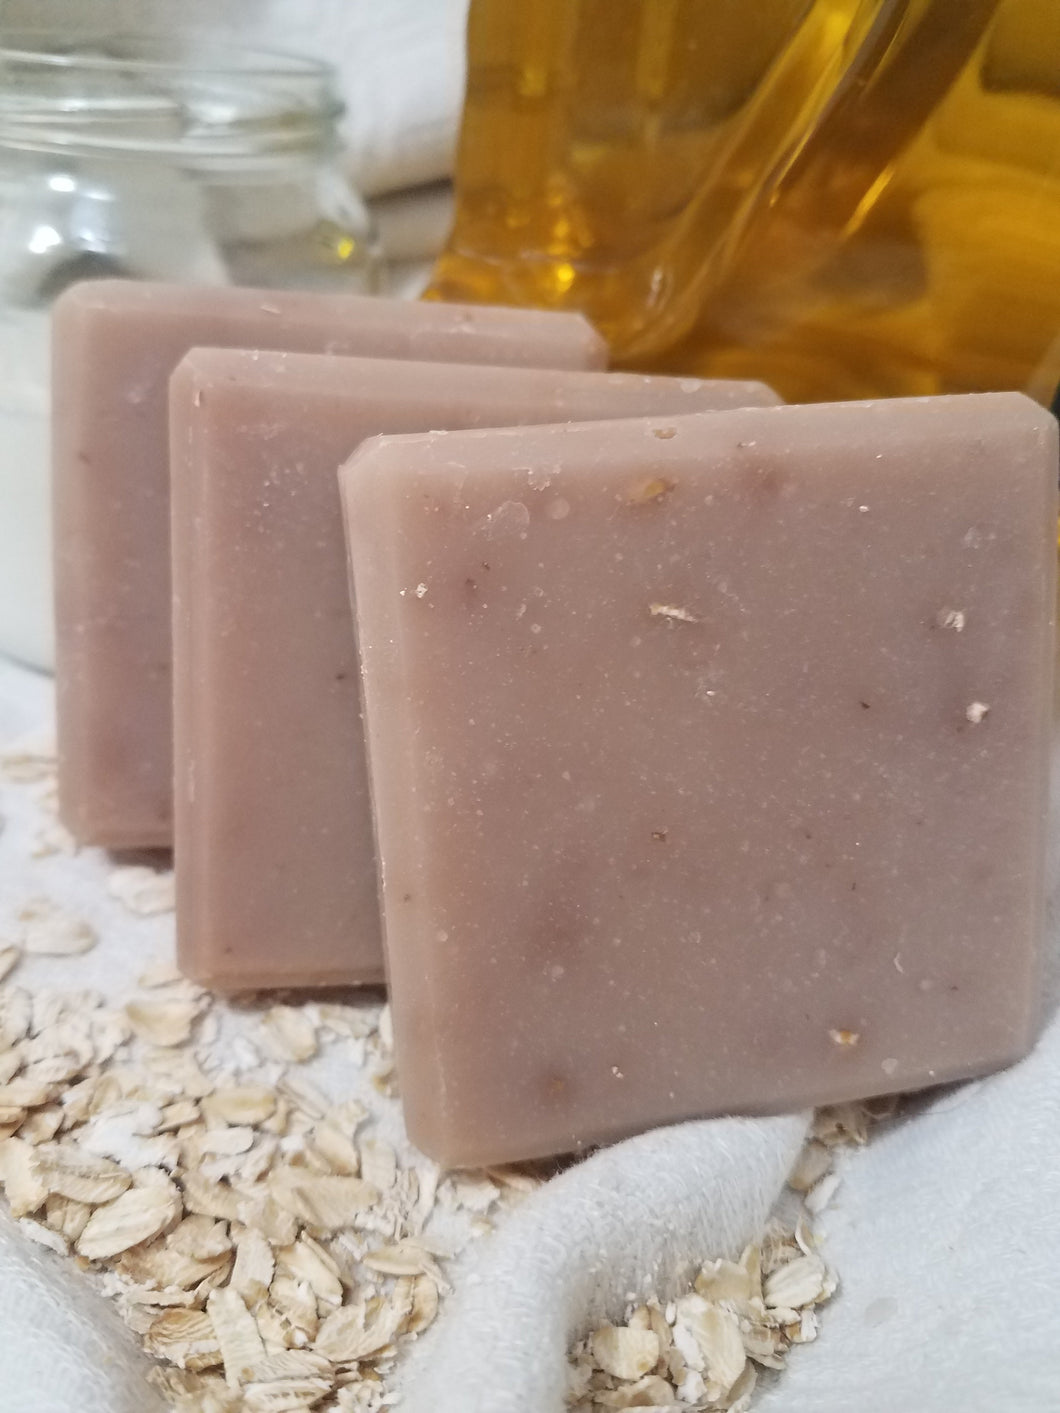 Oats and Goats Milk Soap - Handmade Naturally Scented for Dry Skin